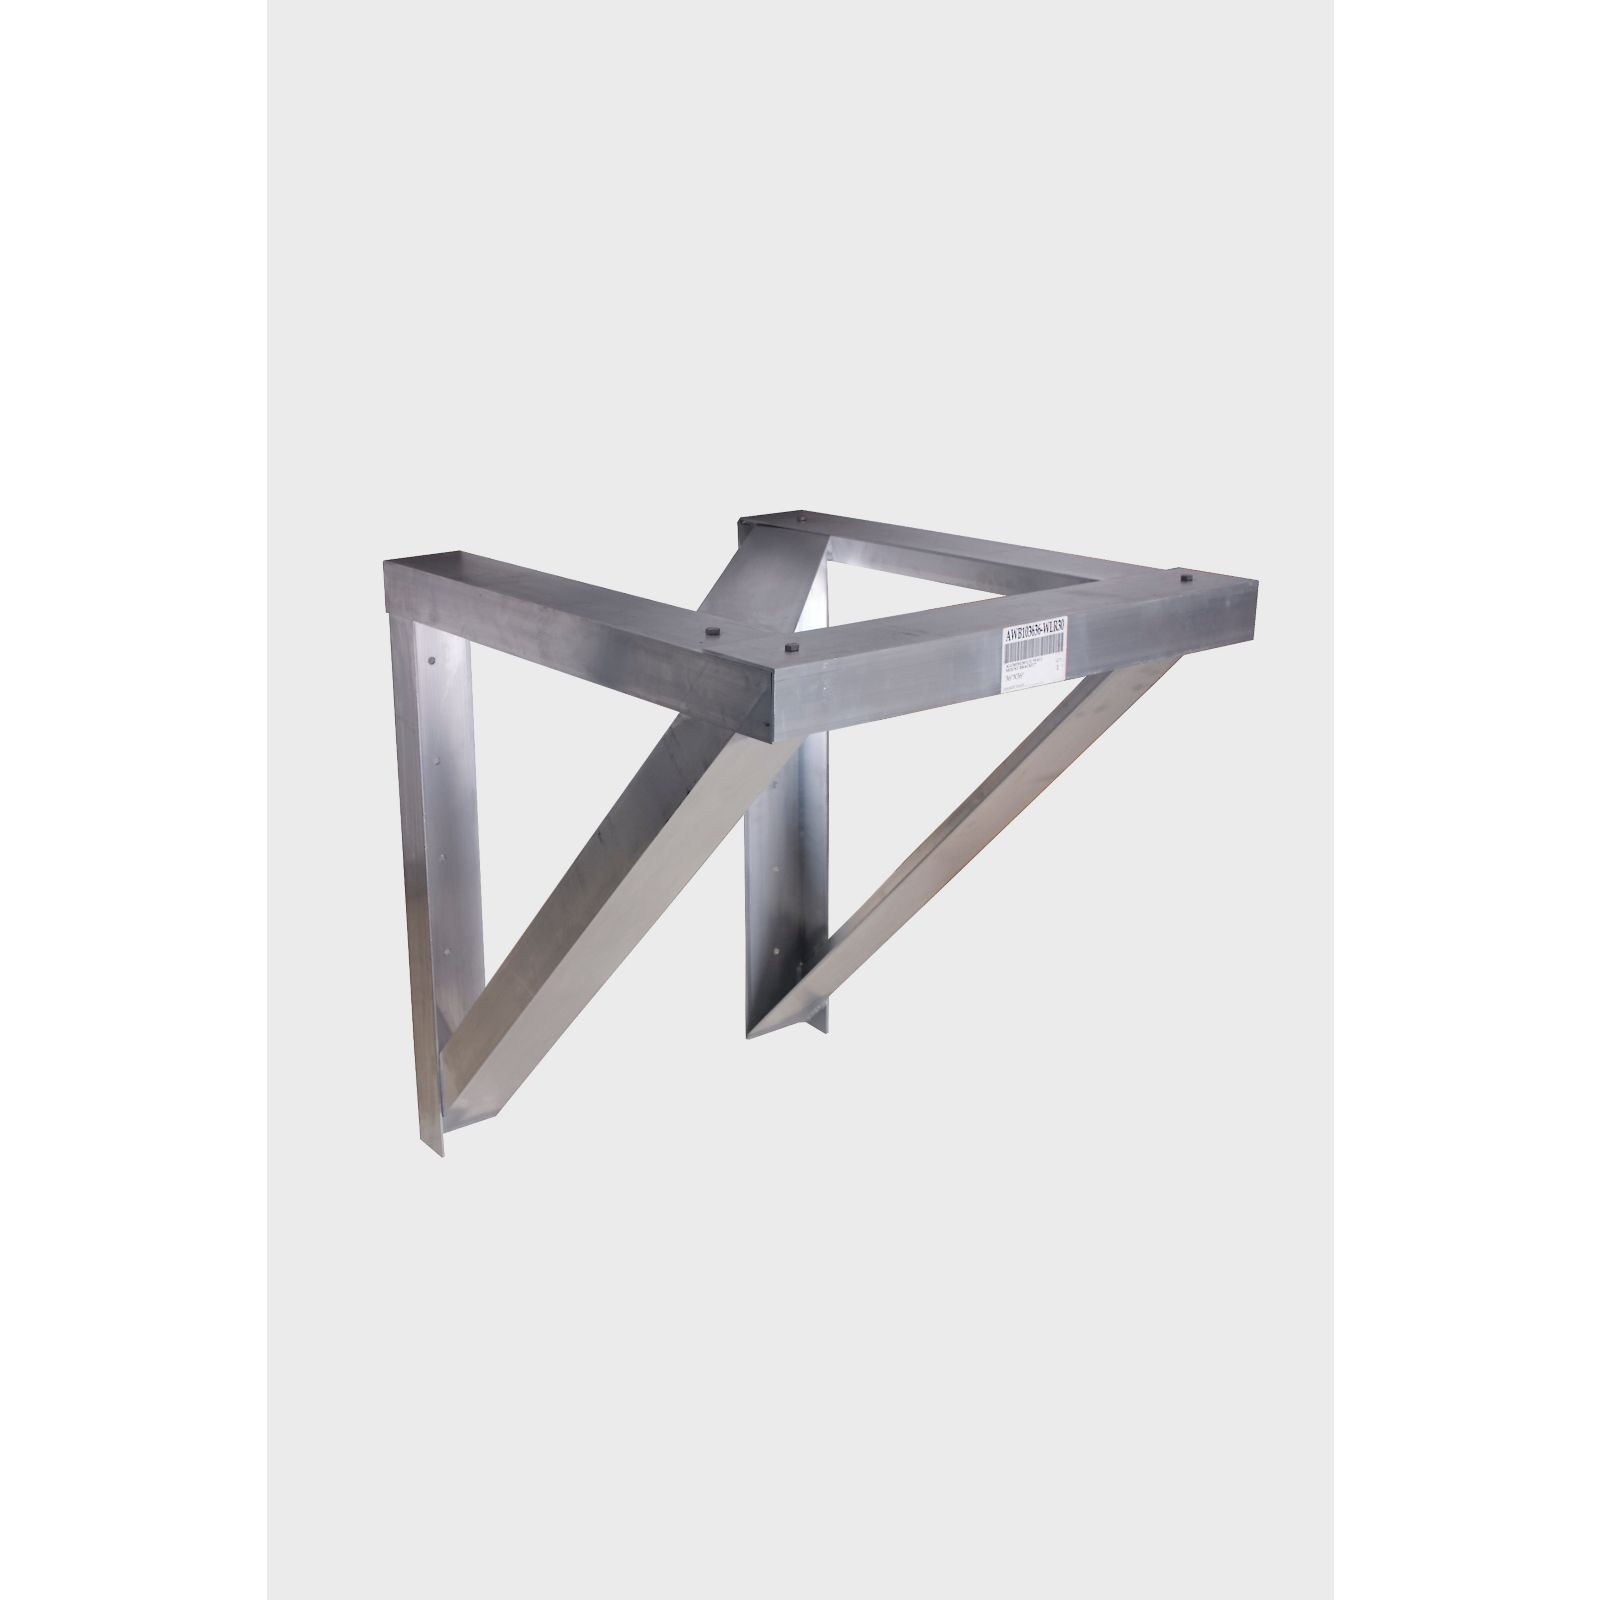 "Miami Tech AWB103036-WLR24 - Aluminum Condensing Unit Wall Mount Bracket, 30"" X 36"", 24"" Wind Load Rated"